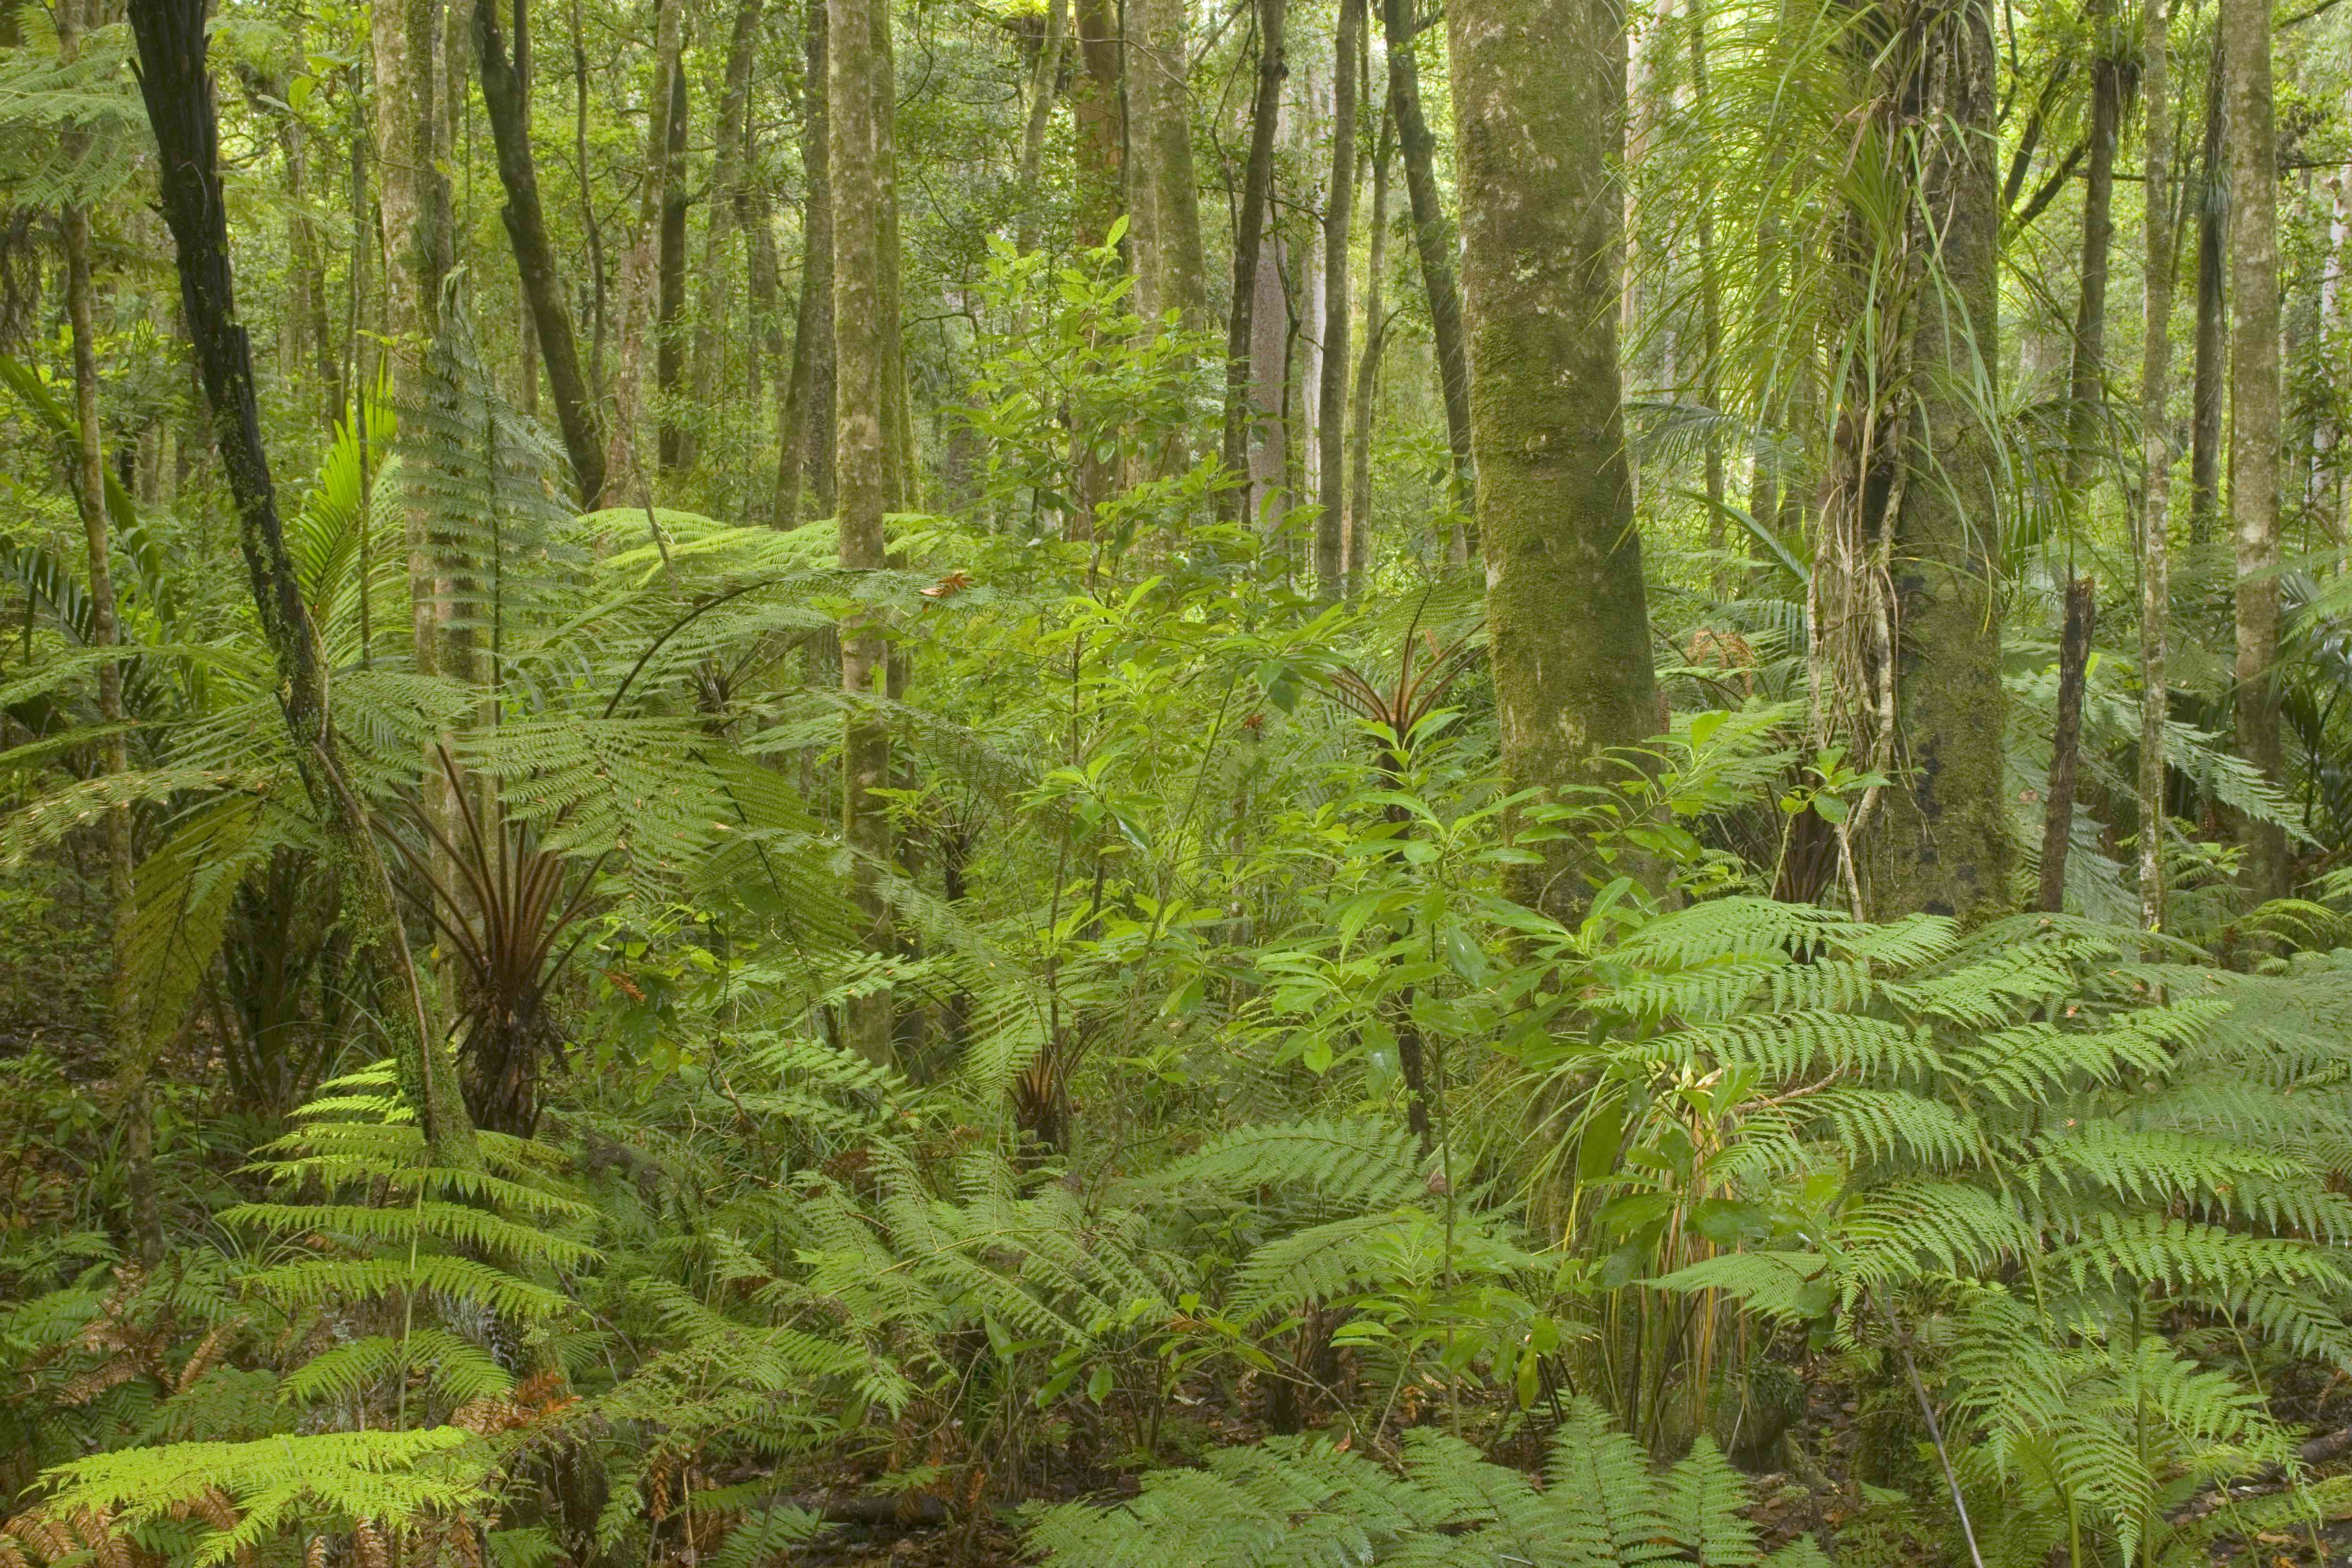 ferns in a kauri forest in New Zealand